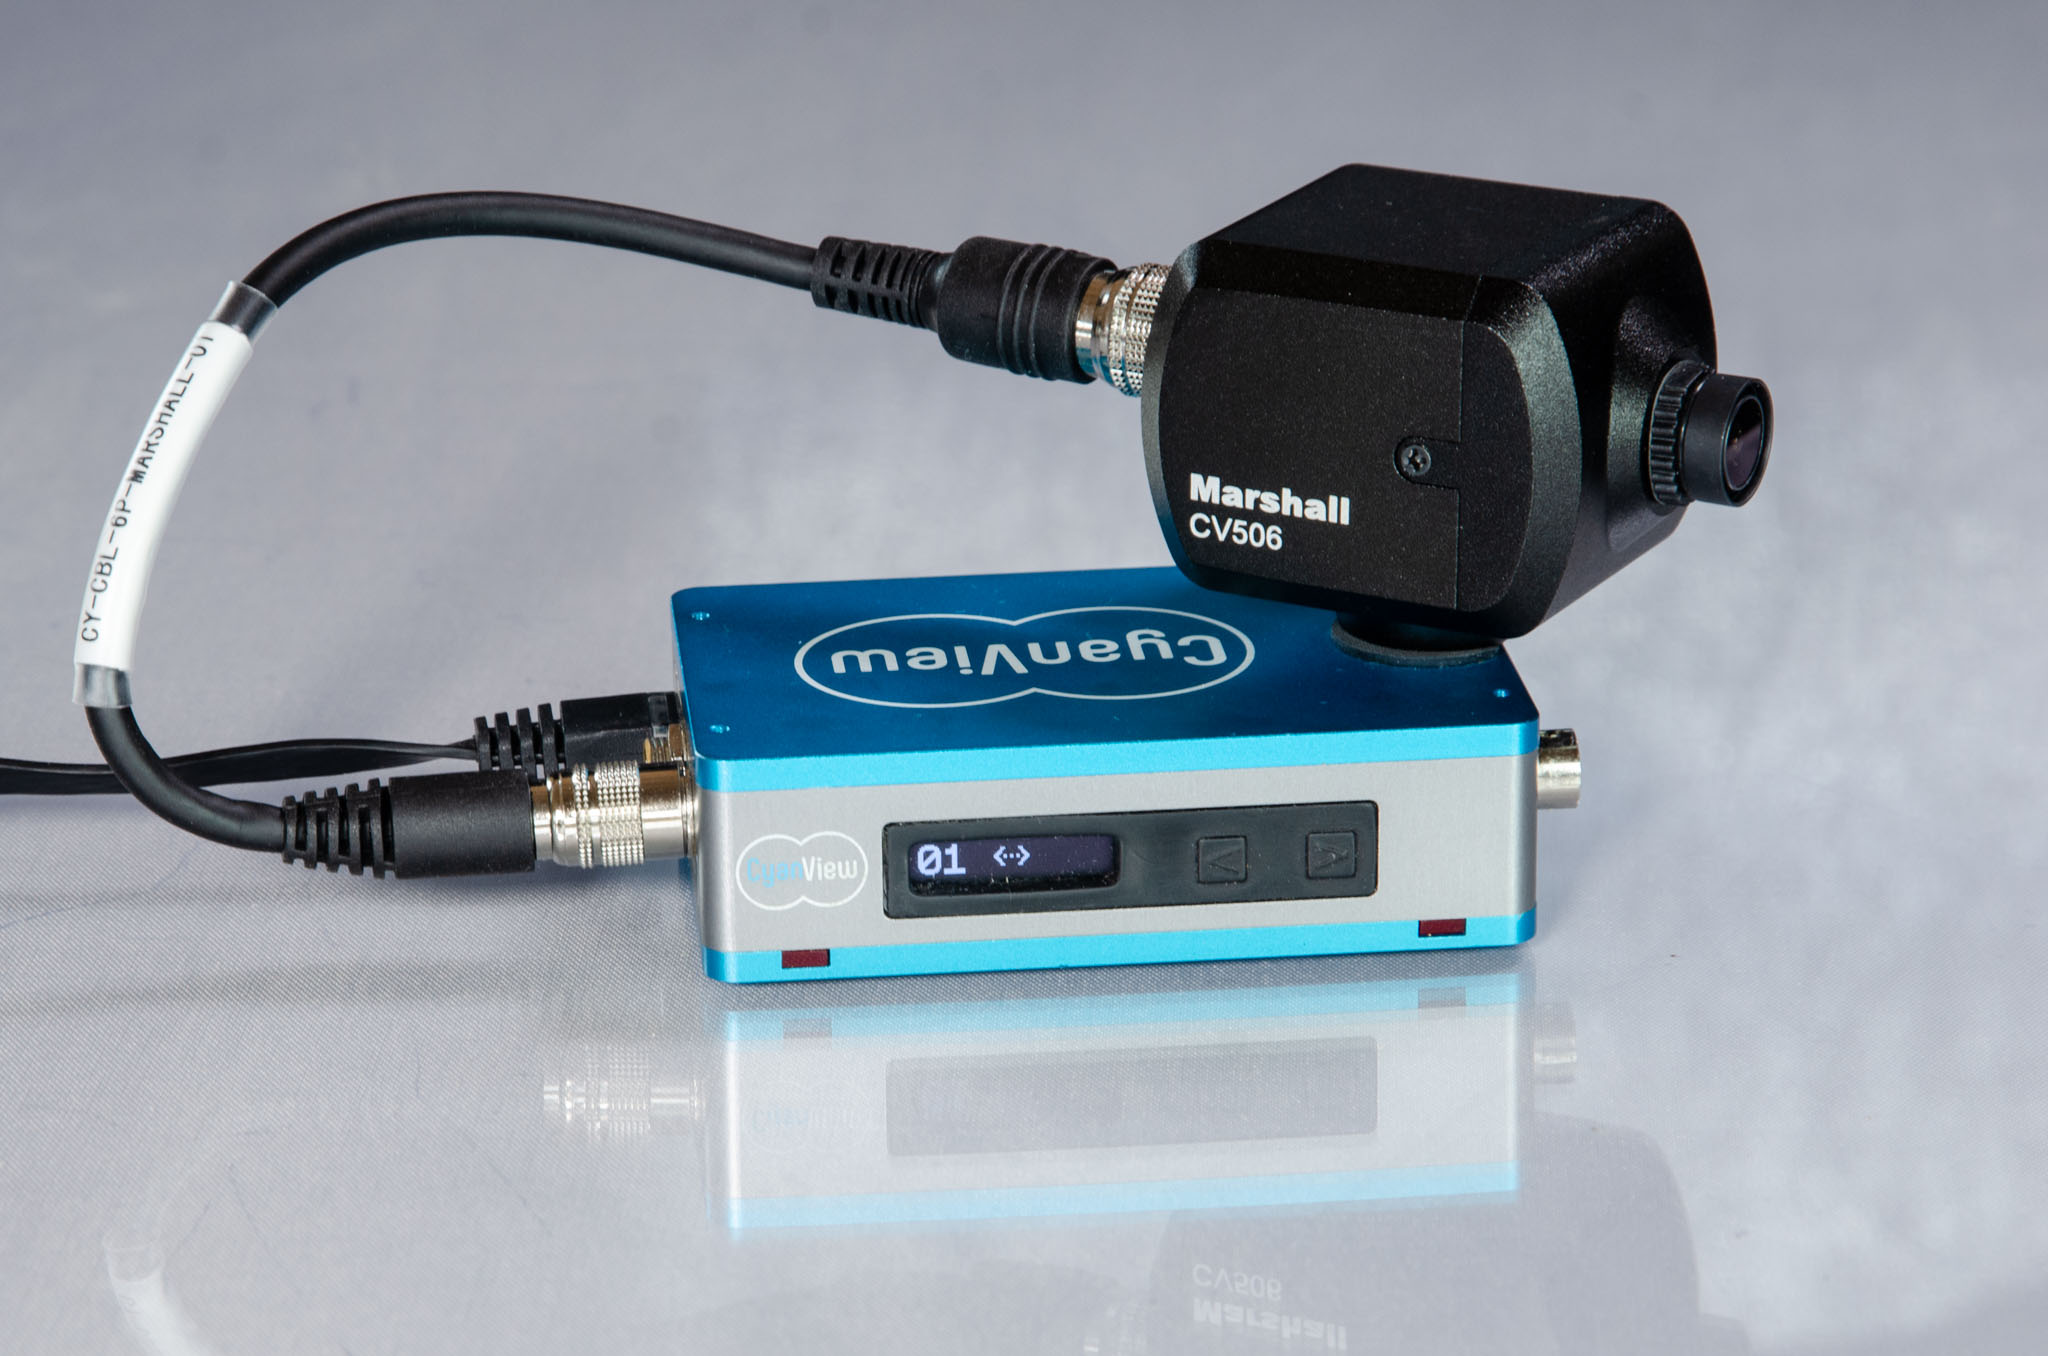 cyanview-support-integration-marshall-mini-camera-cv505-CI0